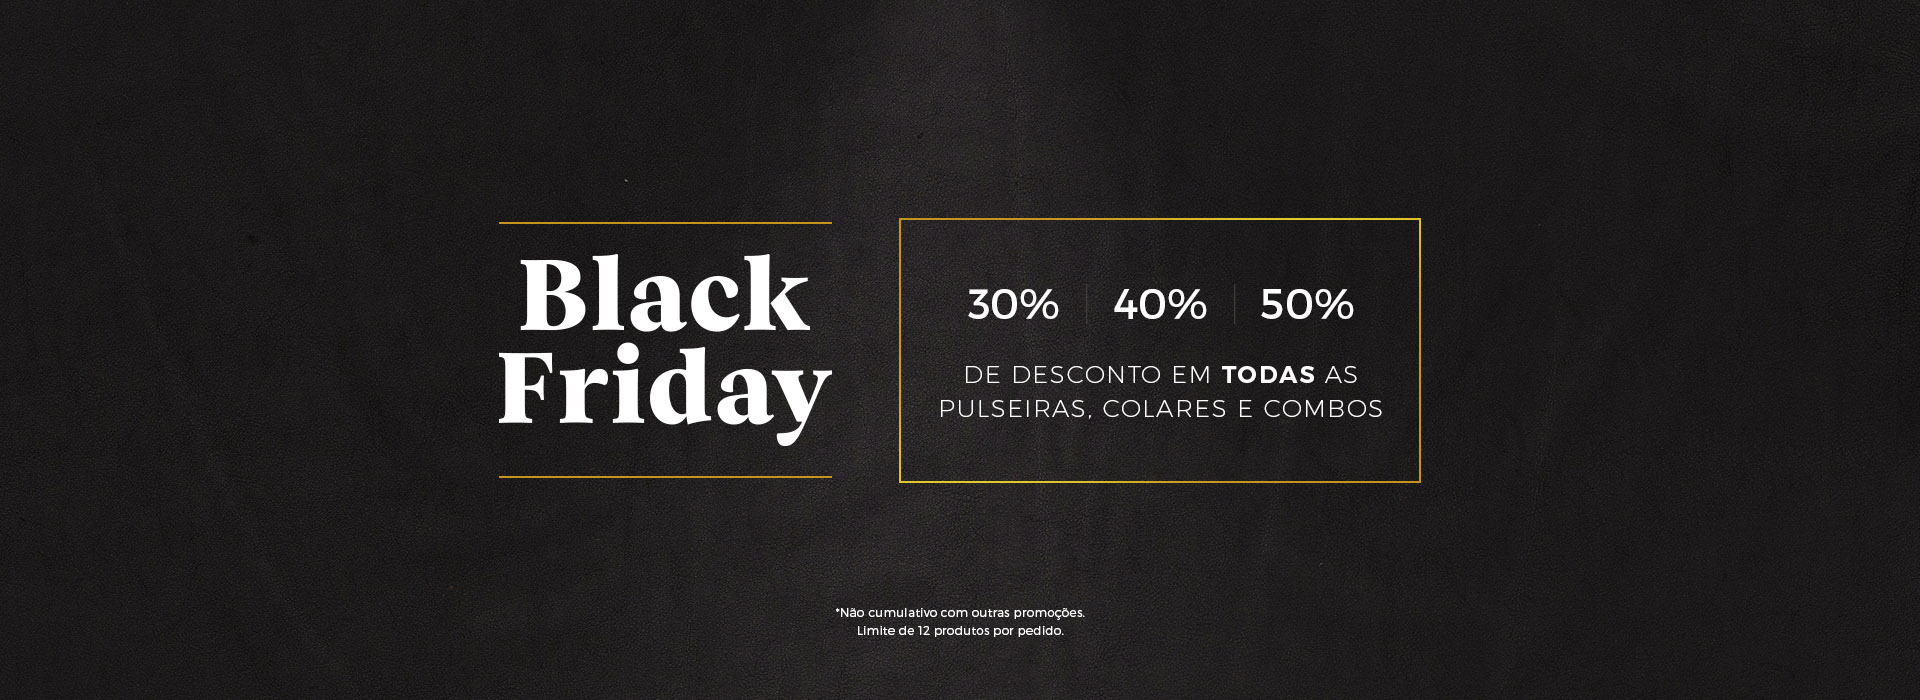 Black Friday JPEG